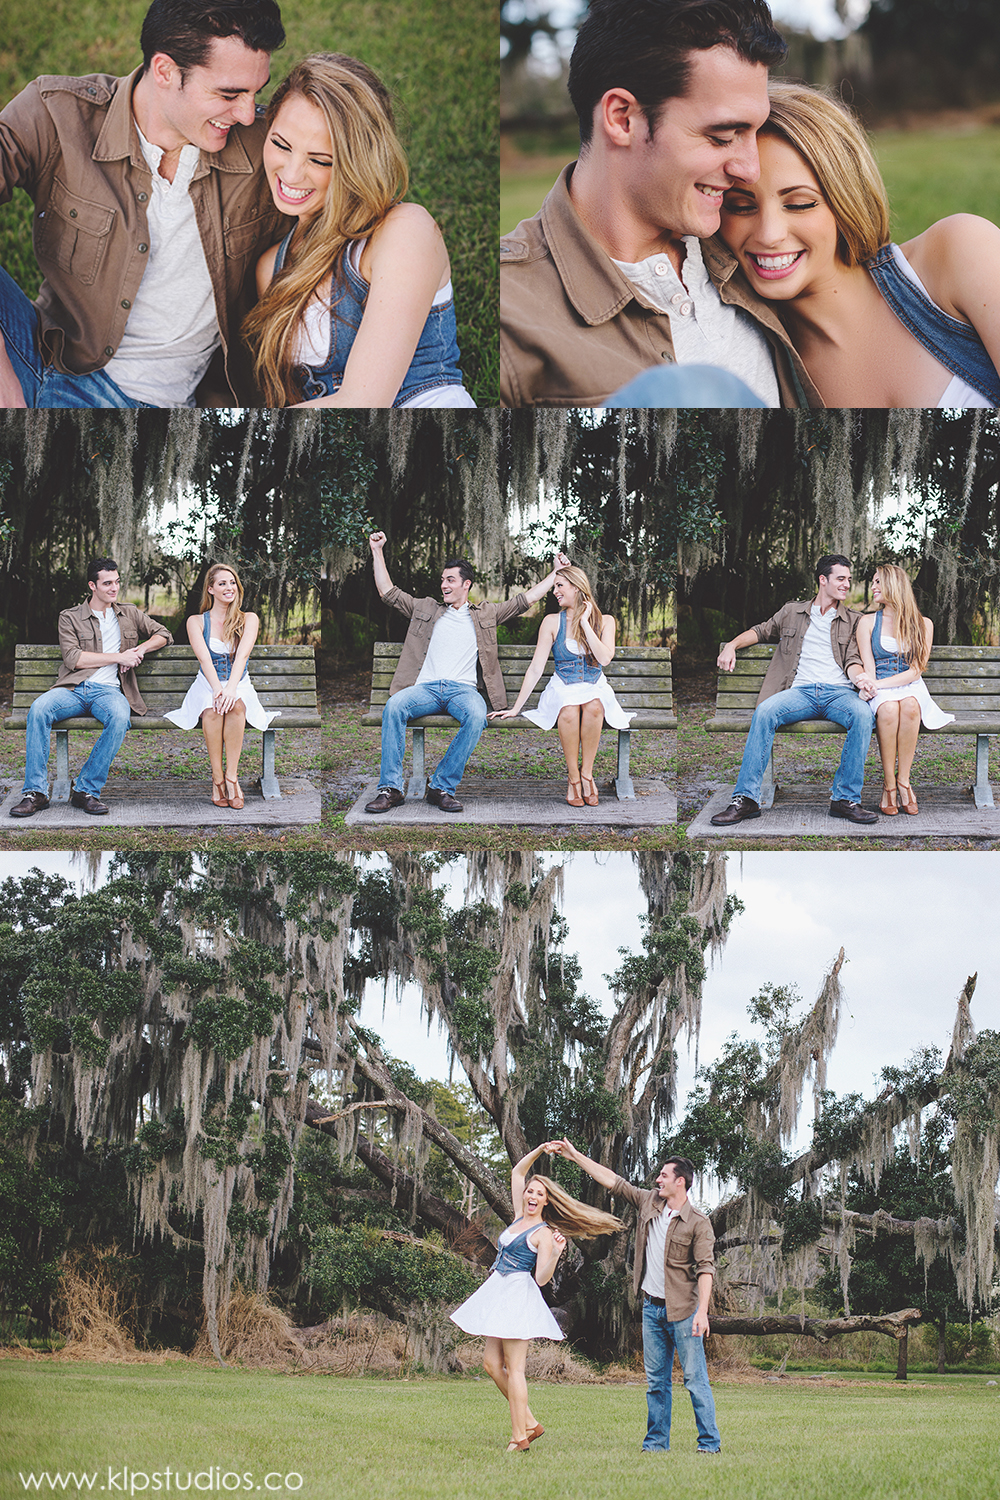 Krista Lajara Photography | www.klpstudios.co | Florida Couple Session